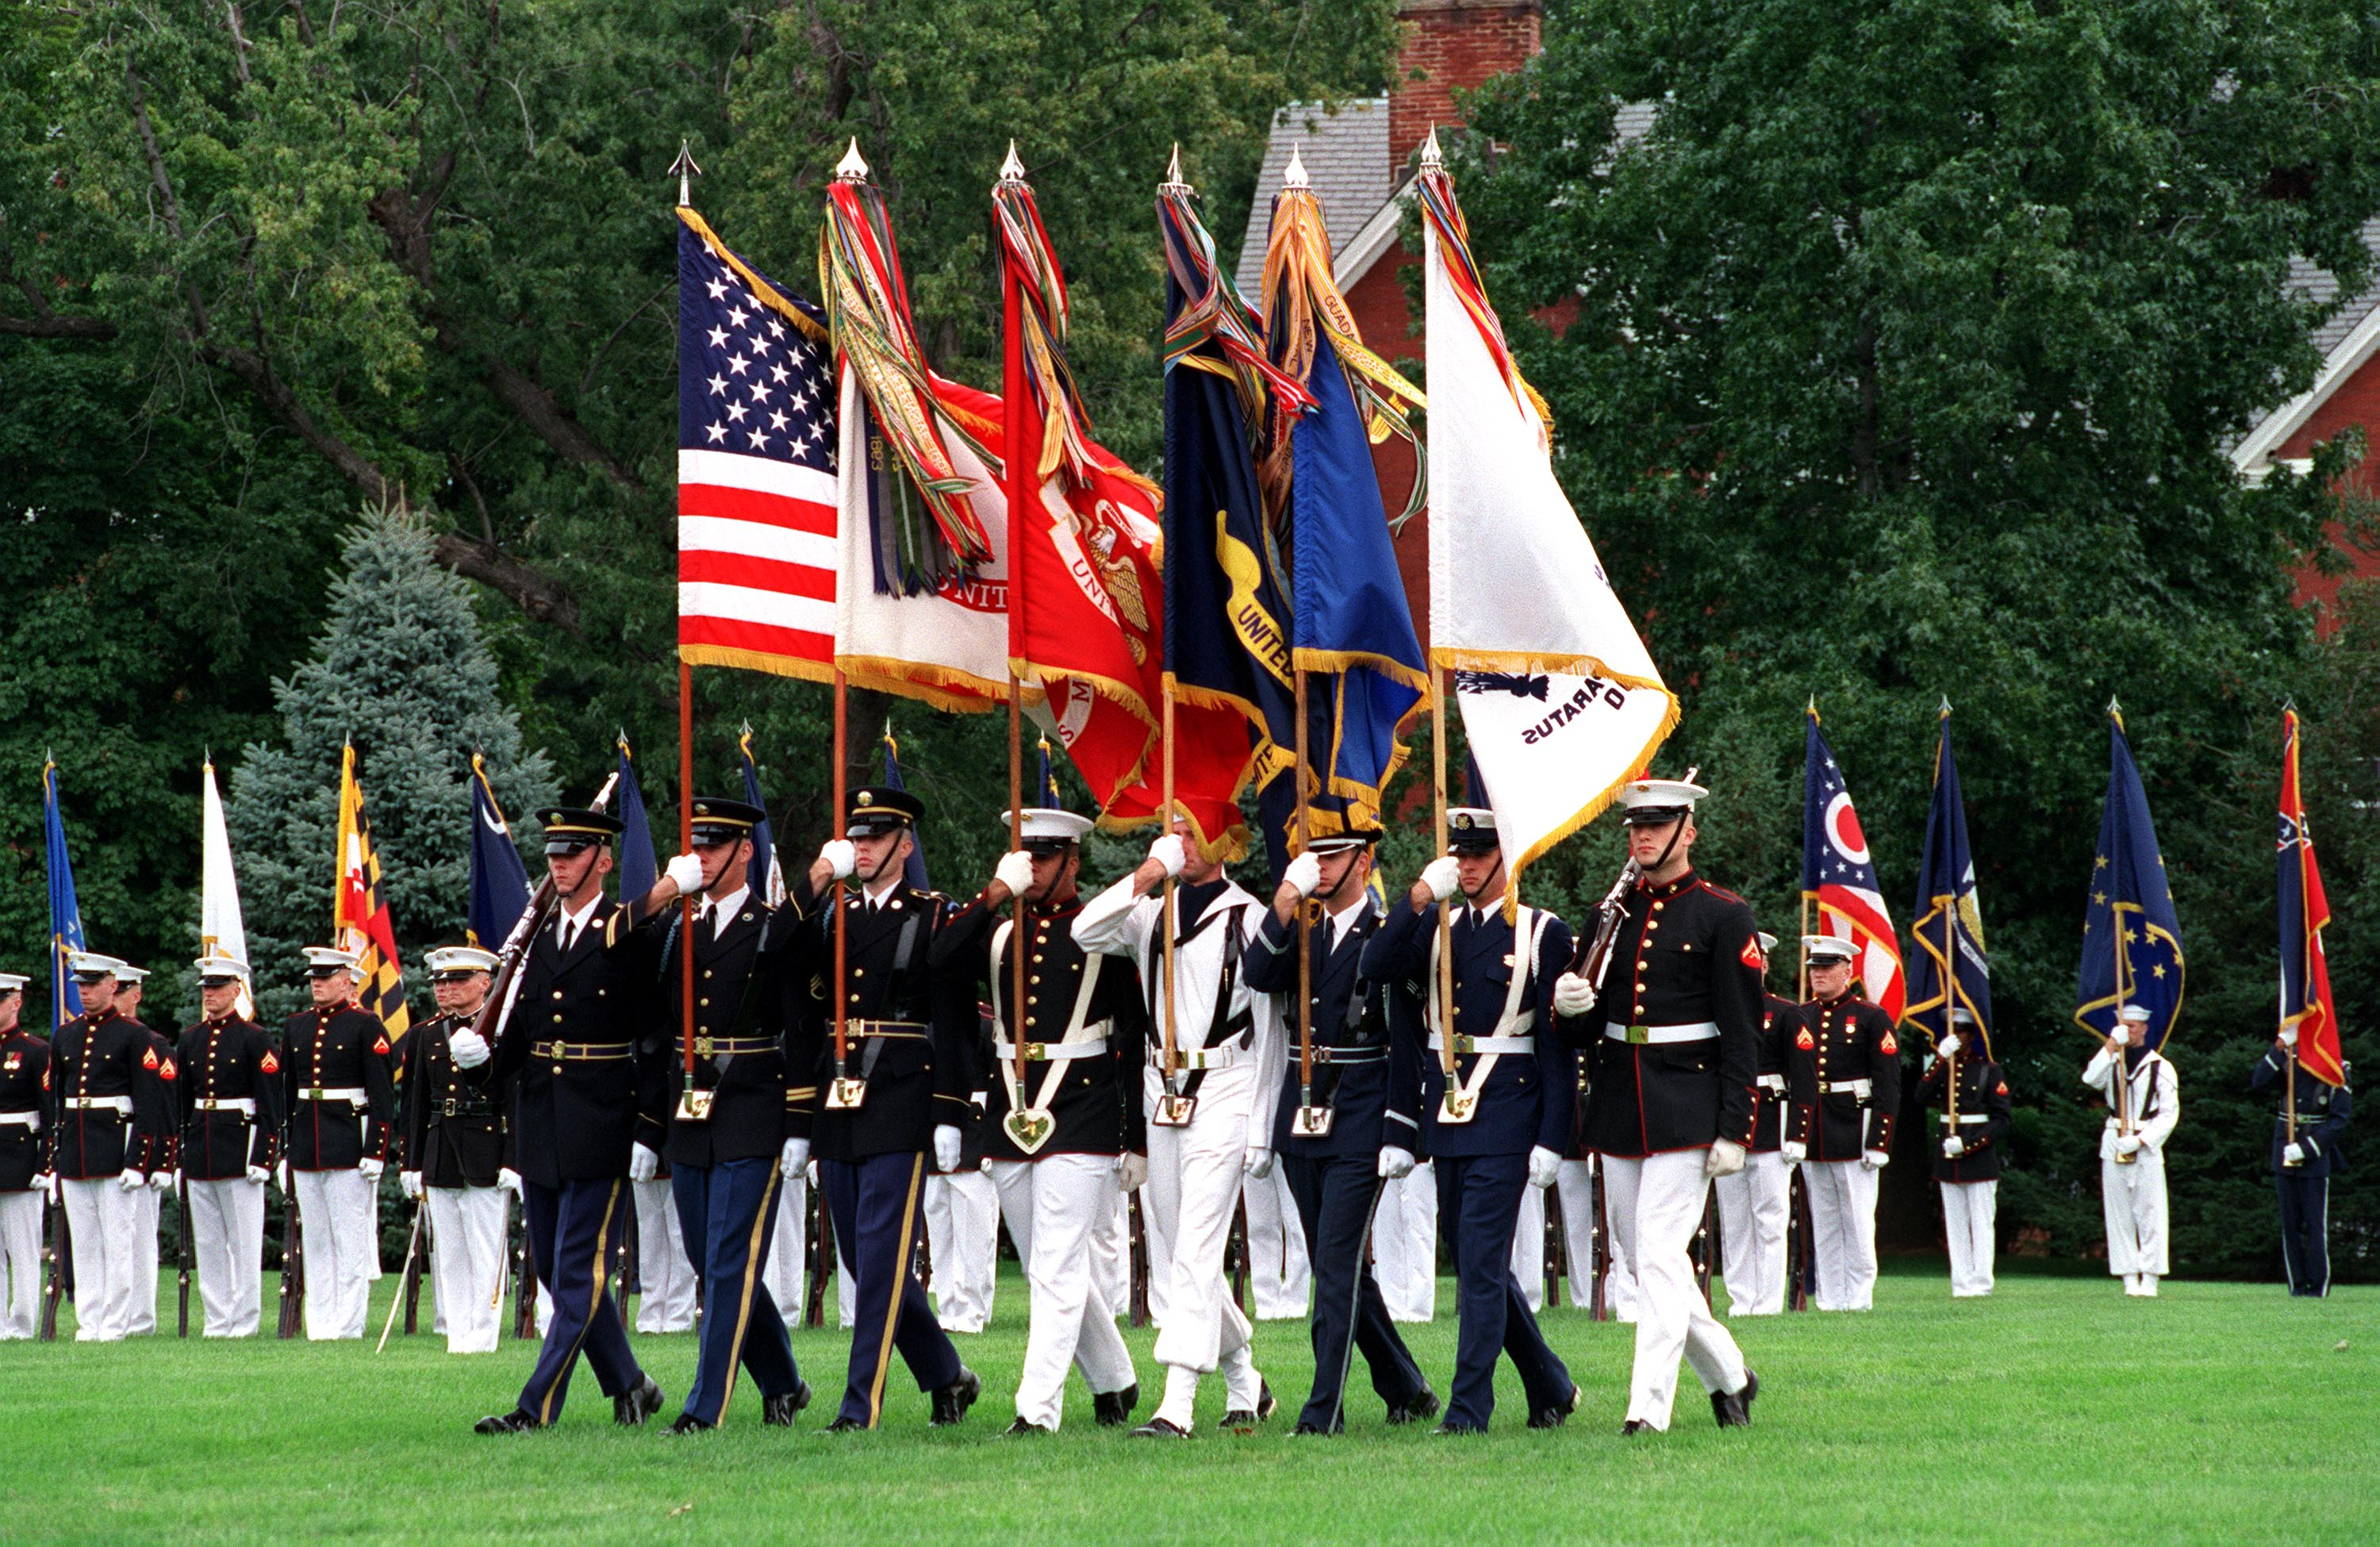 United States Armed Forces. United States Joint Service Color Guard on parade at Fort Myer